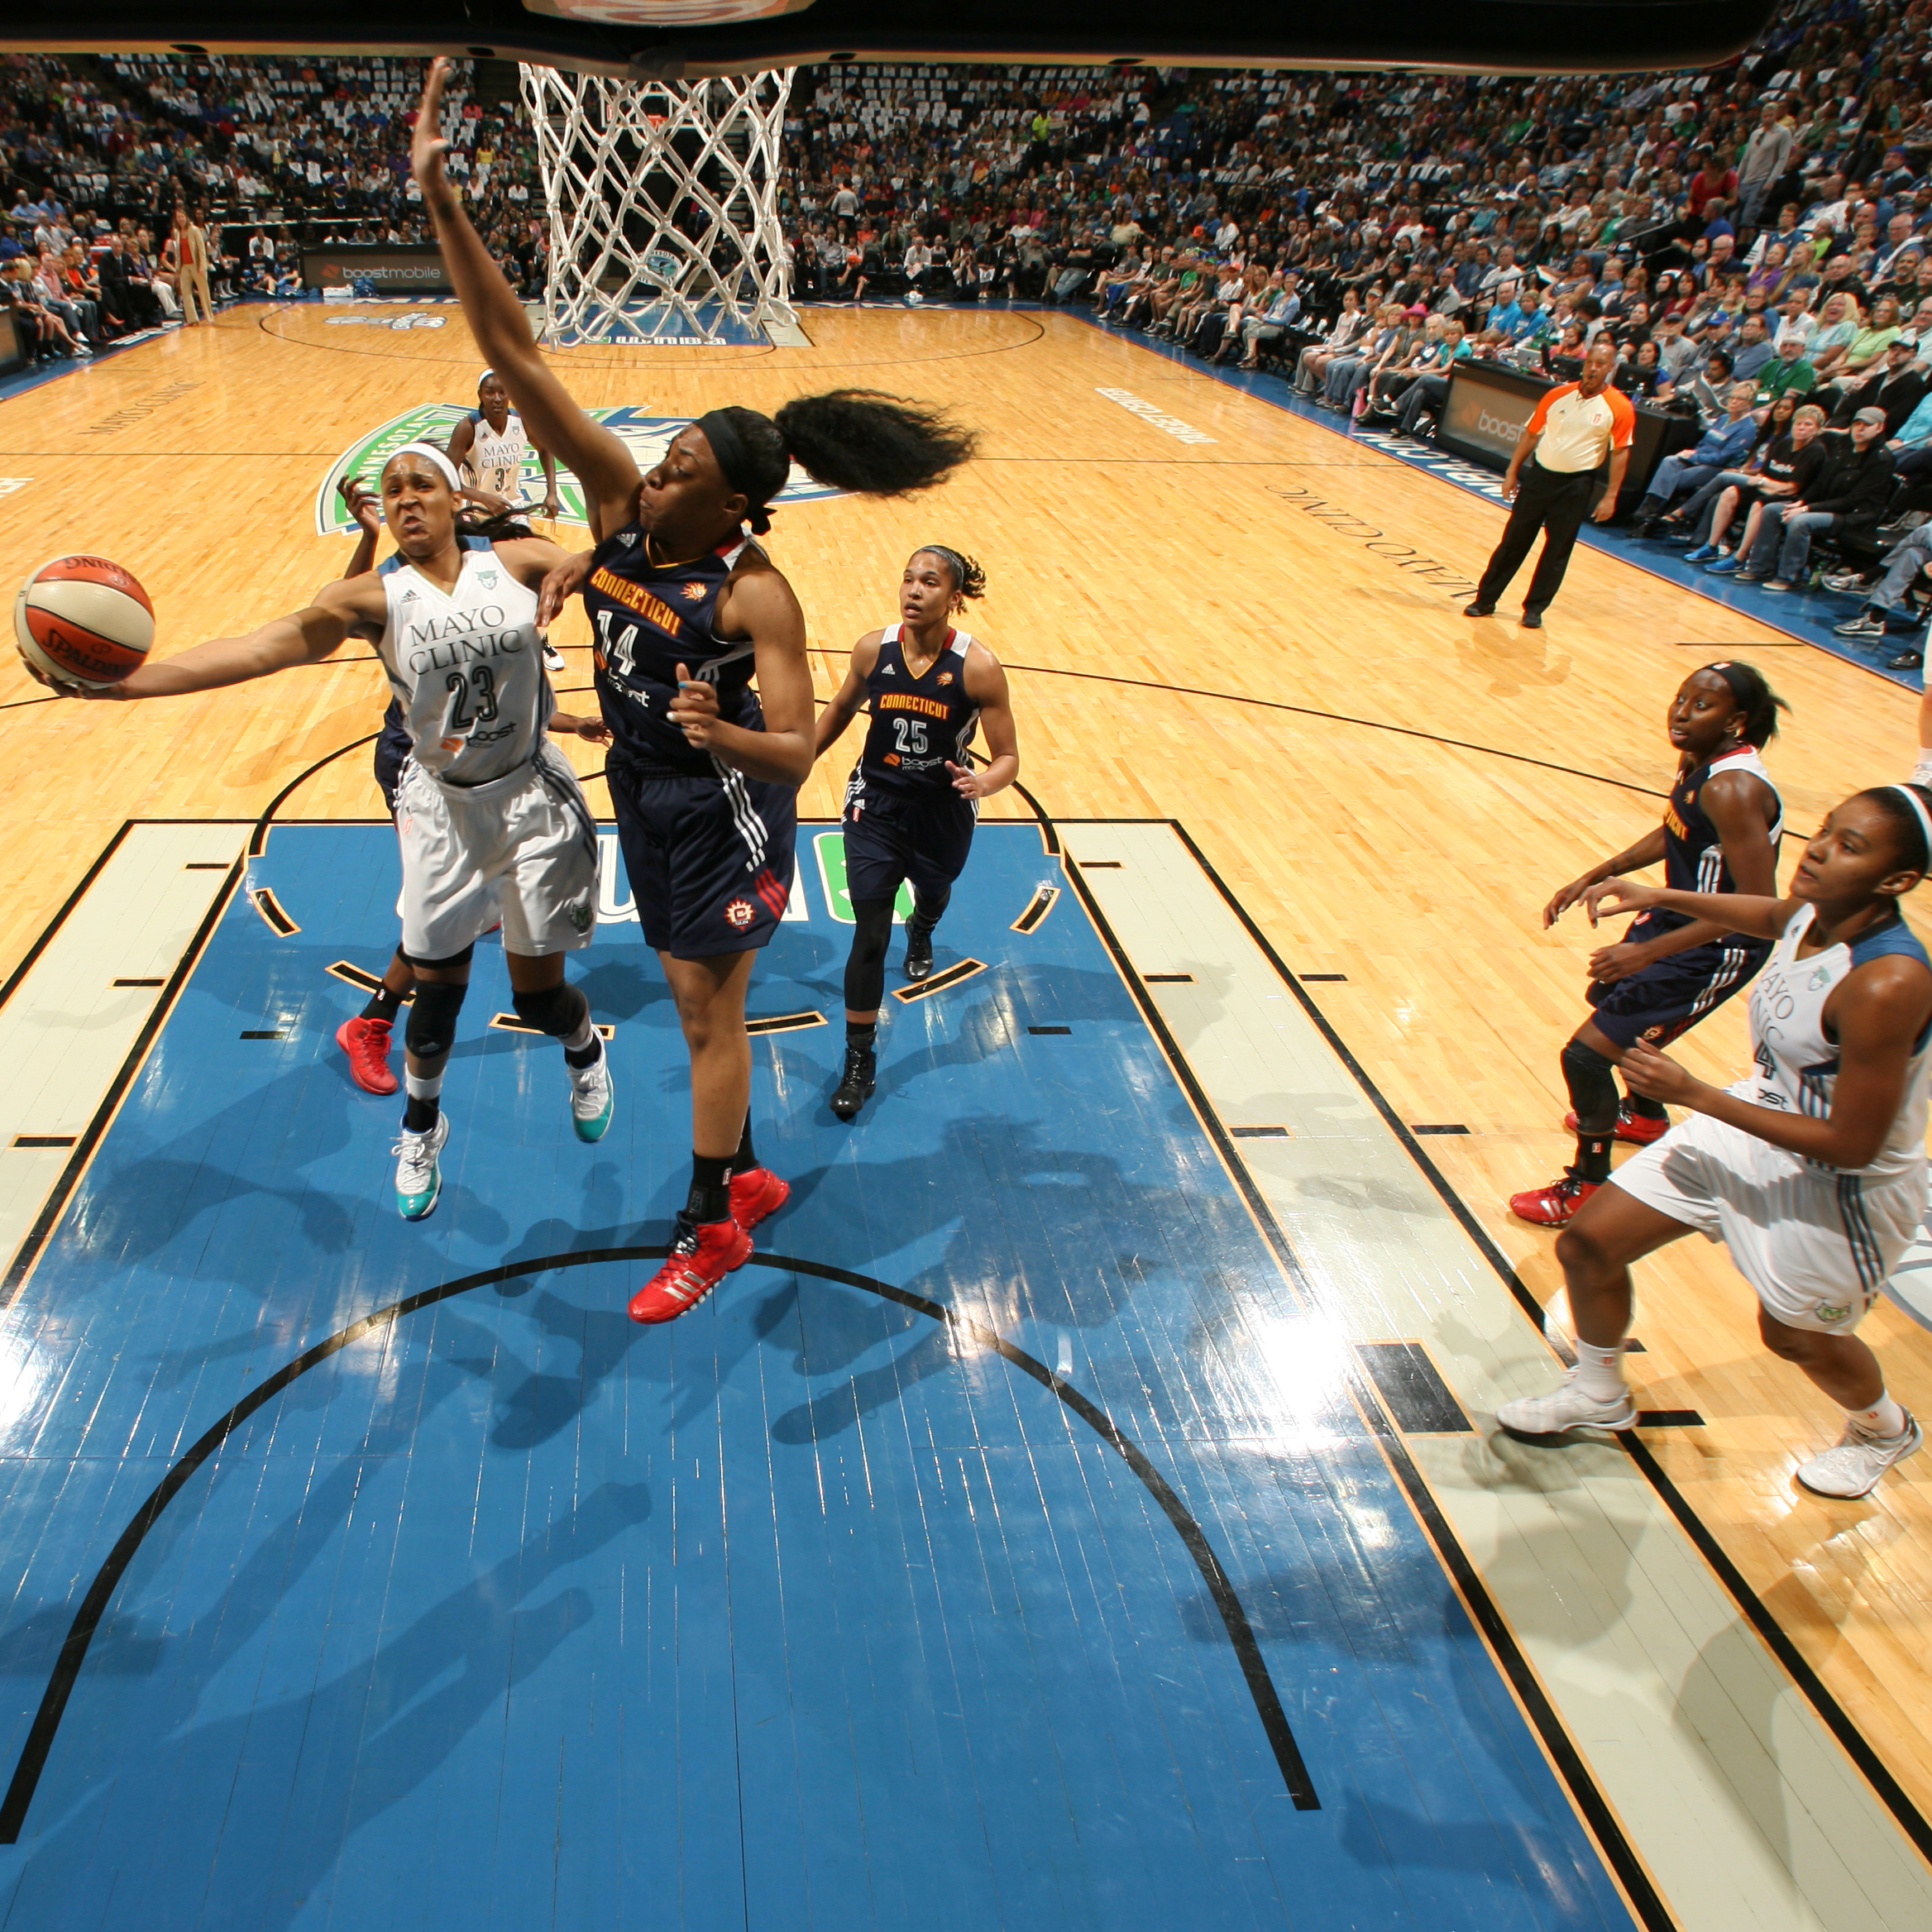 2014's Home-Opener: Lynx forward Maya Moore had a monster game against the Sun leading all scorers with 33 points to go with her 12 rebounds, two assists and five steals.